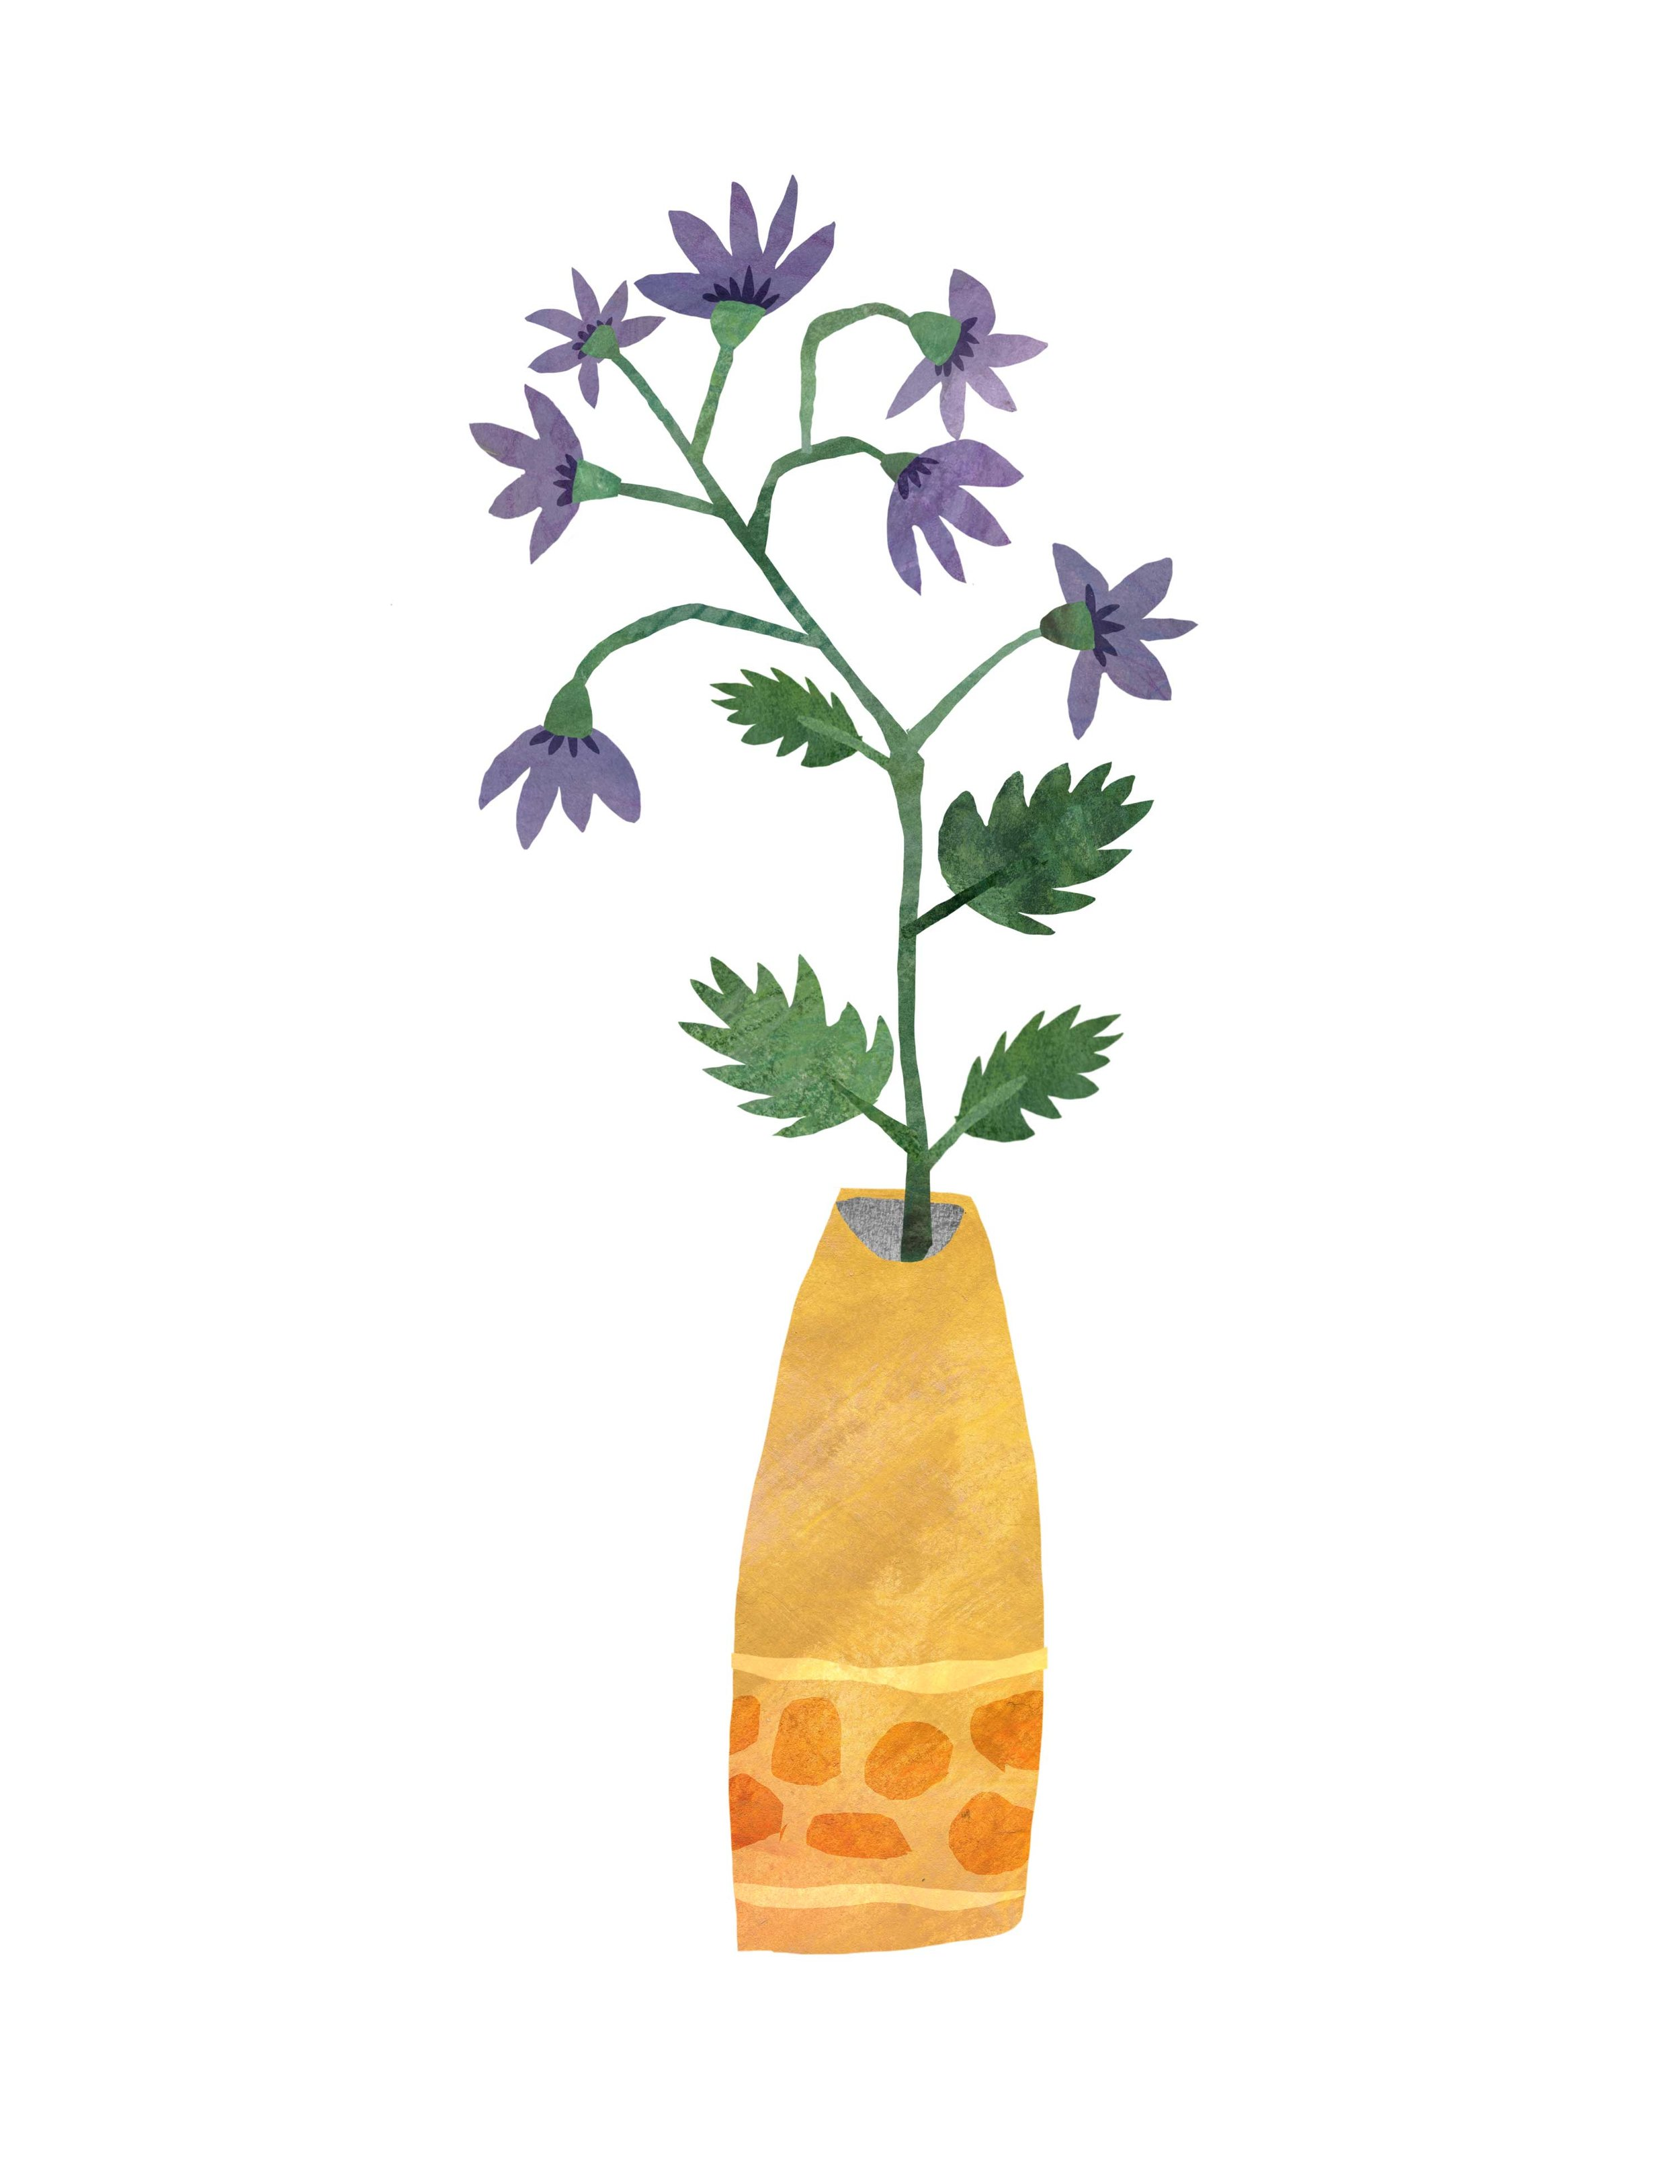 purple-flowers-yellow-vase.jpg